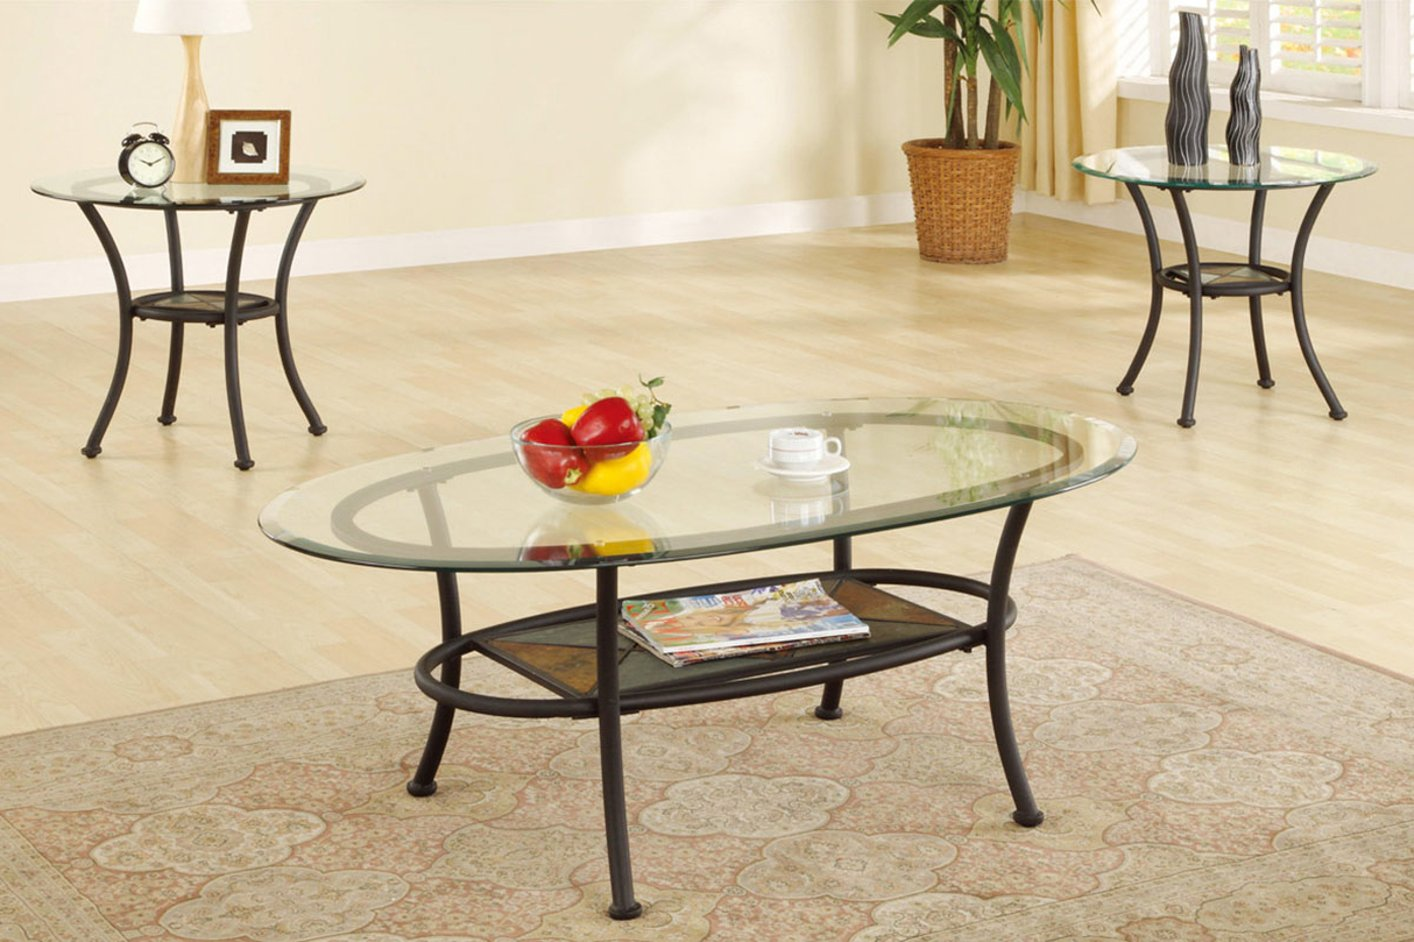 Black Glass Coffee Table Set - Poundex F3104 Black Glass Coffee Table Set - Steal-A-Sofa